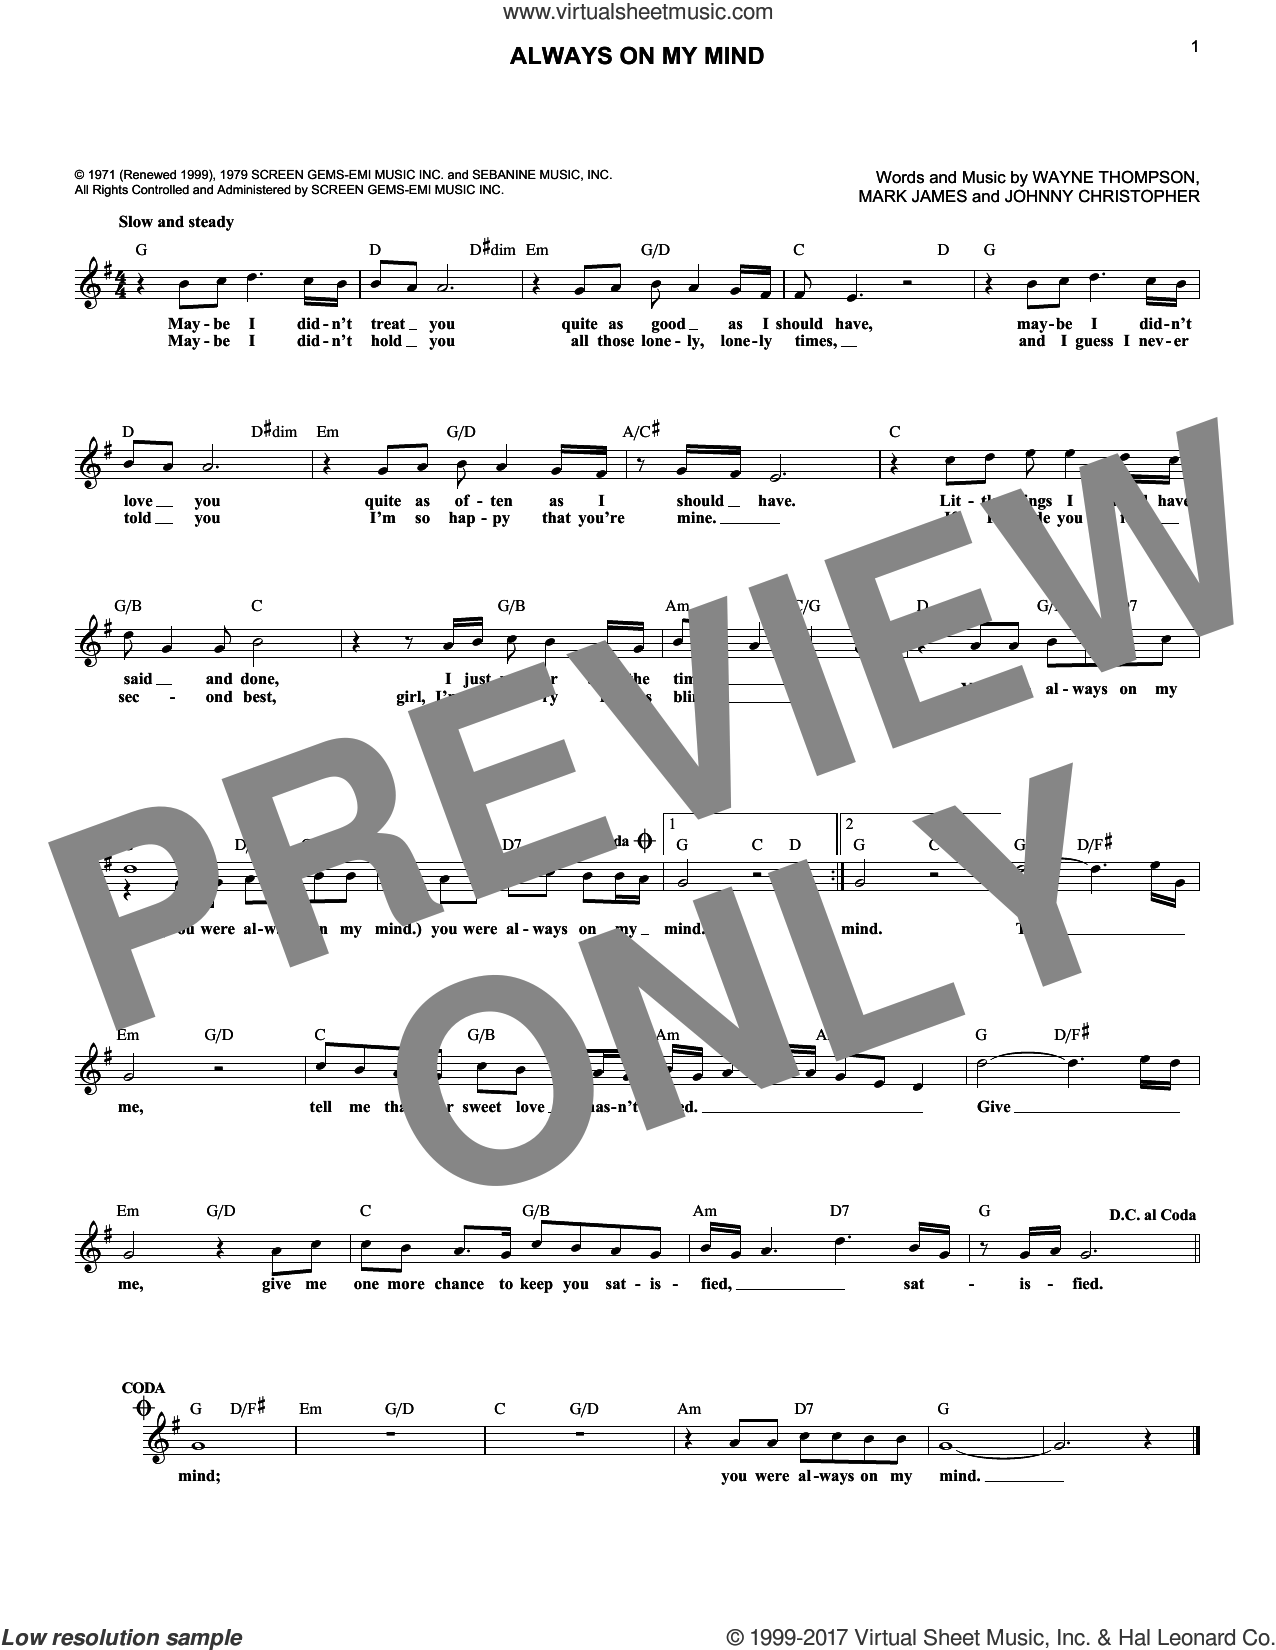 Always On My Mind sheet music for voice and other instruments (fake book) by Wayne Thompson, Elvis Presley, Michael Buble, The Pet Shop Boys, Willie Nelson, Johnny Christopher and Mark James, intermediate skill level